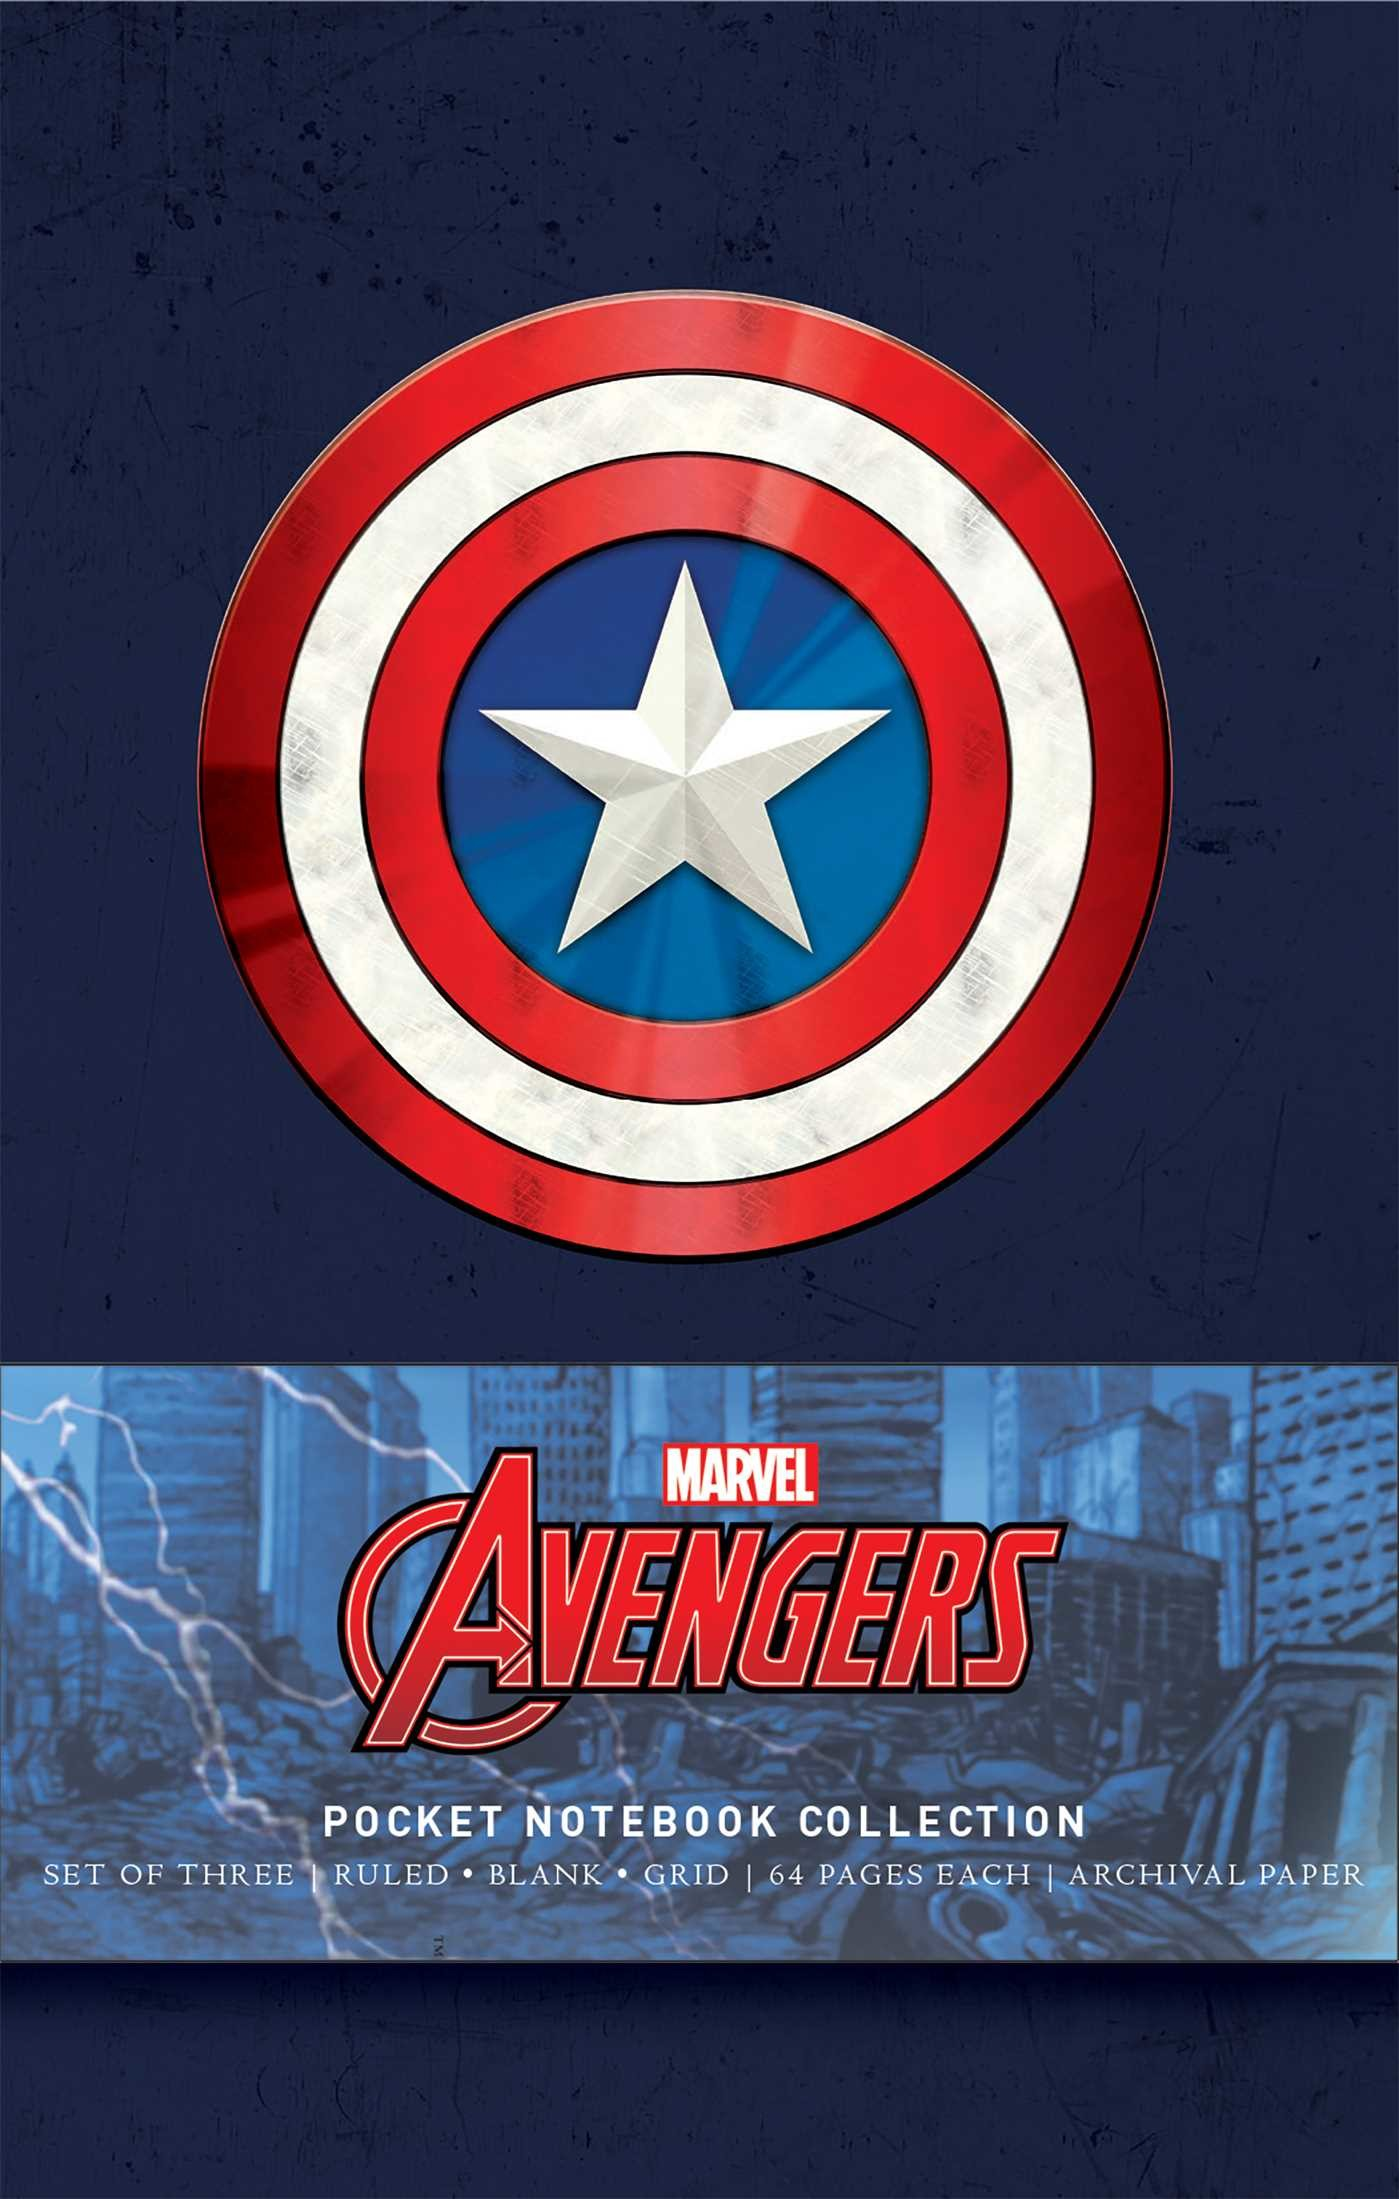 Marvels avengers pocket notebook collection set of 3 9781683832843.in01